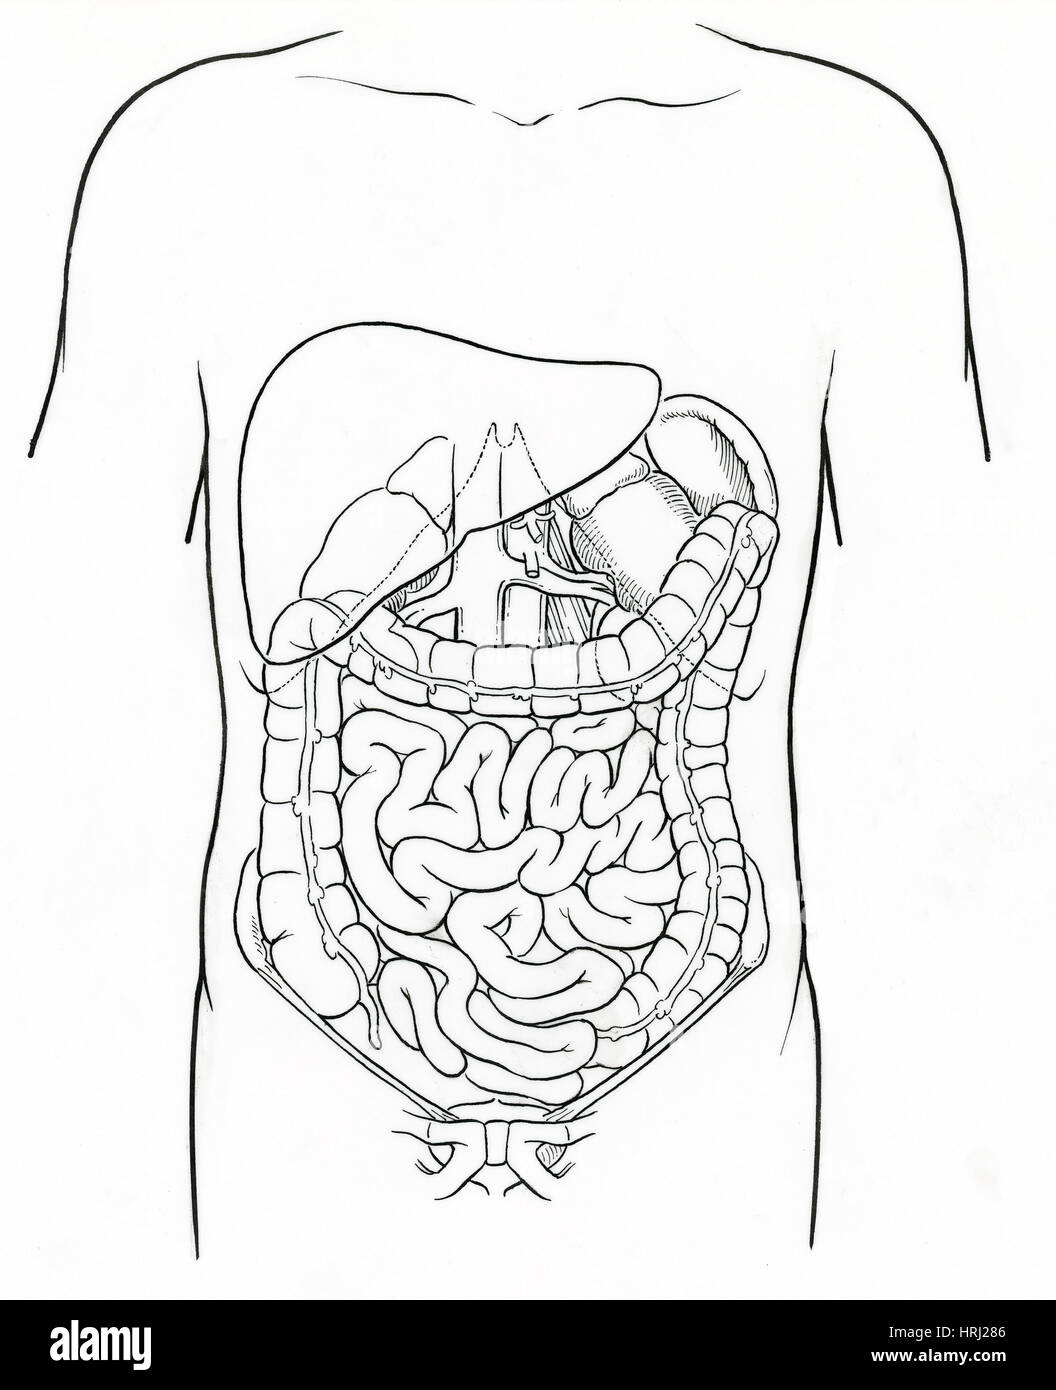 Illustration of Abdomen - Stock Image